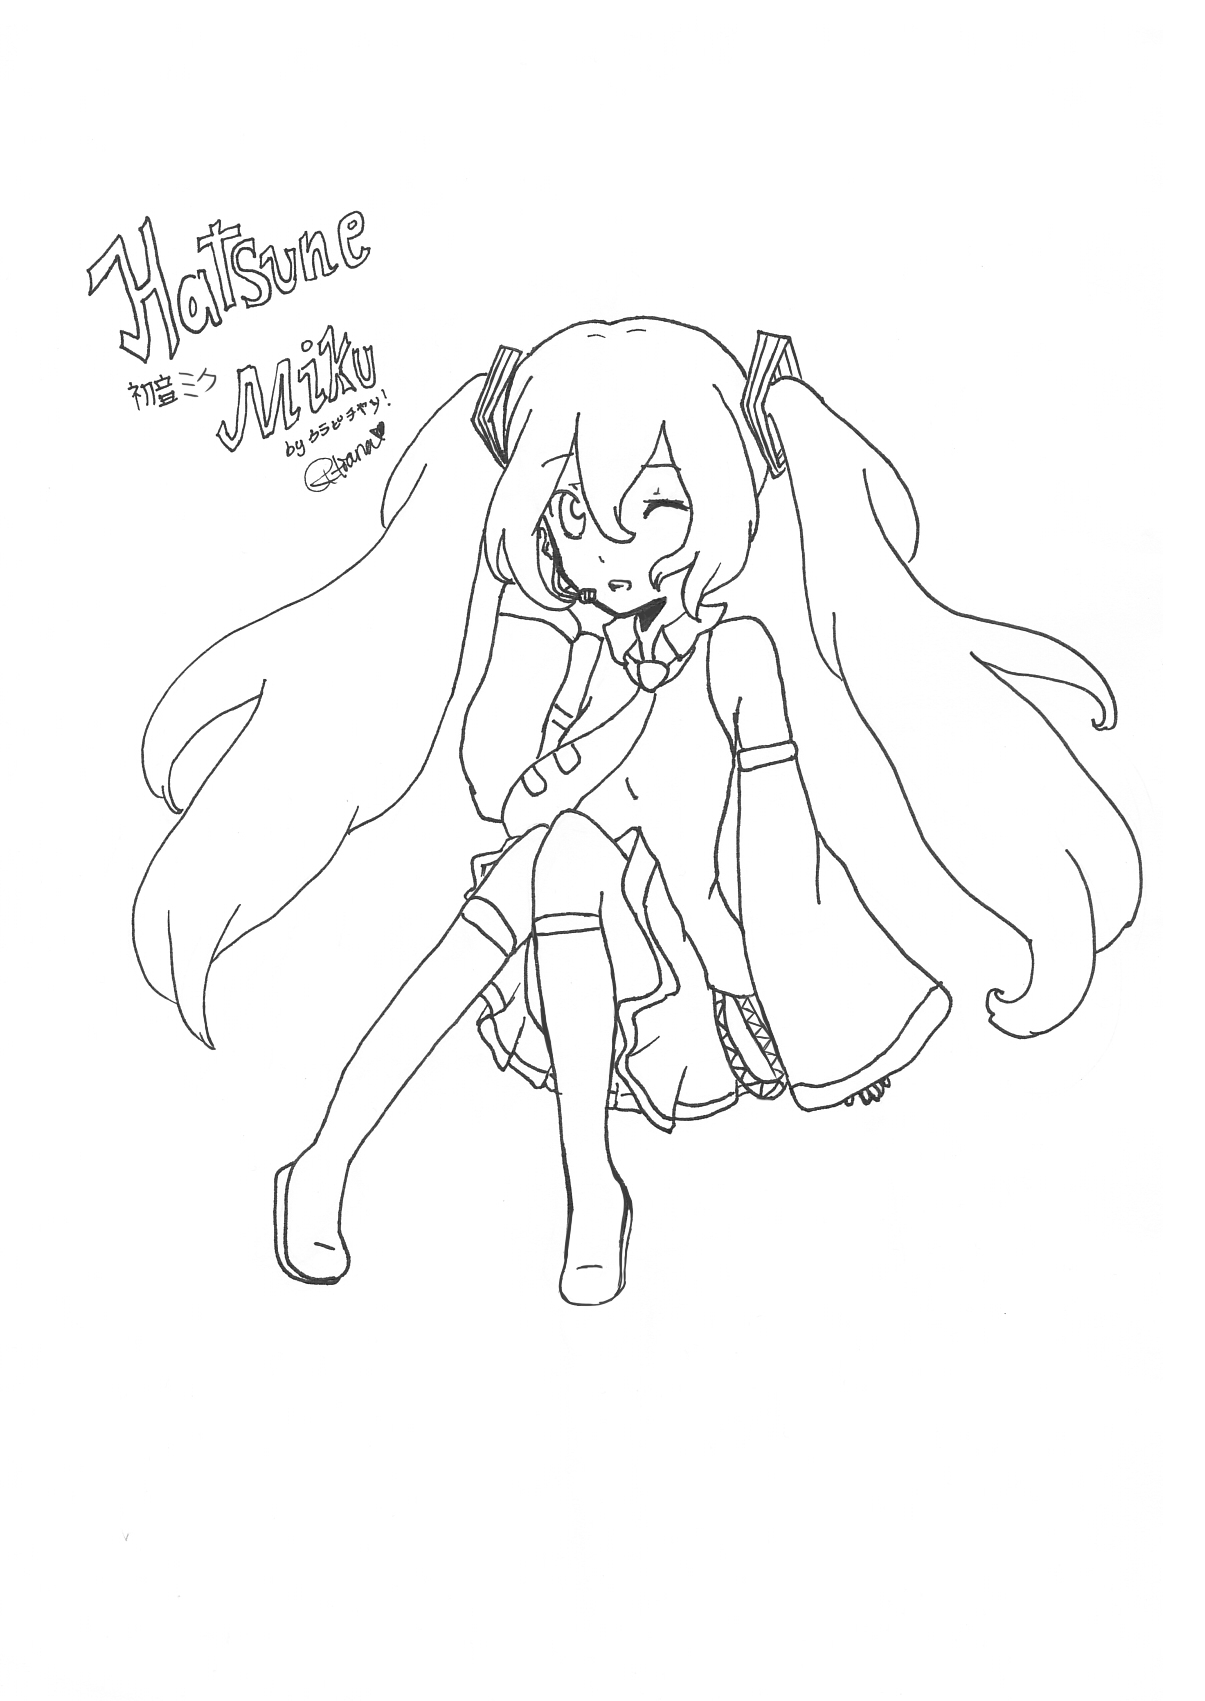 Hatsune miku colouring page by